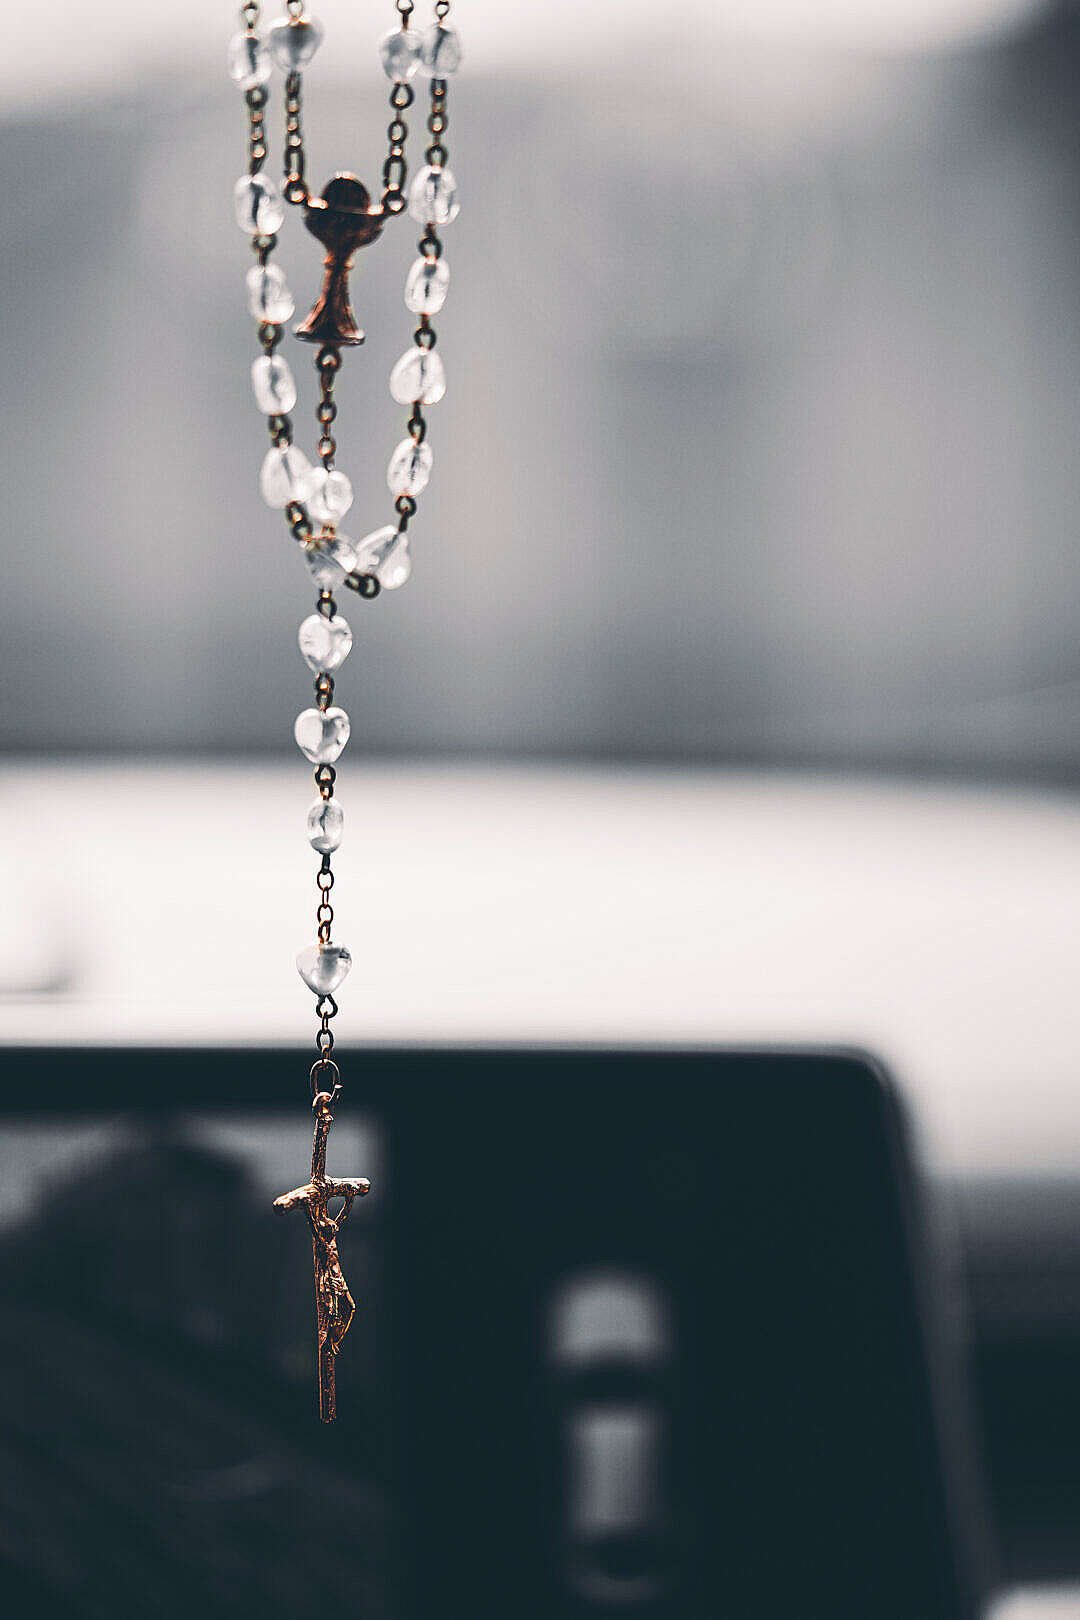 Download Rosary Christian Cross Hanging on the Mirror in the Car FREE Stock Photo